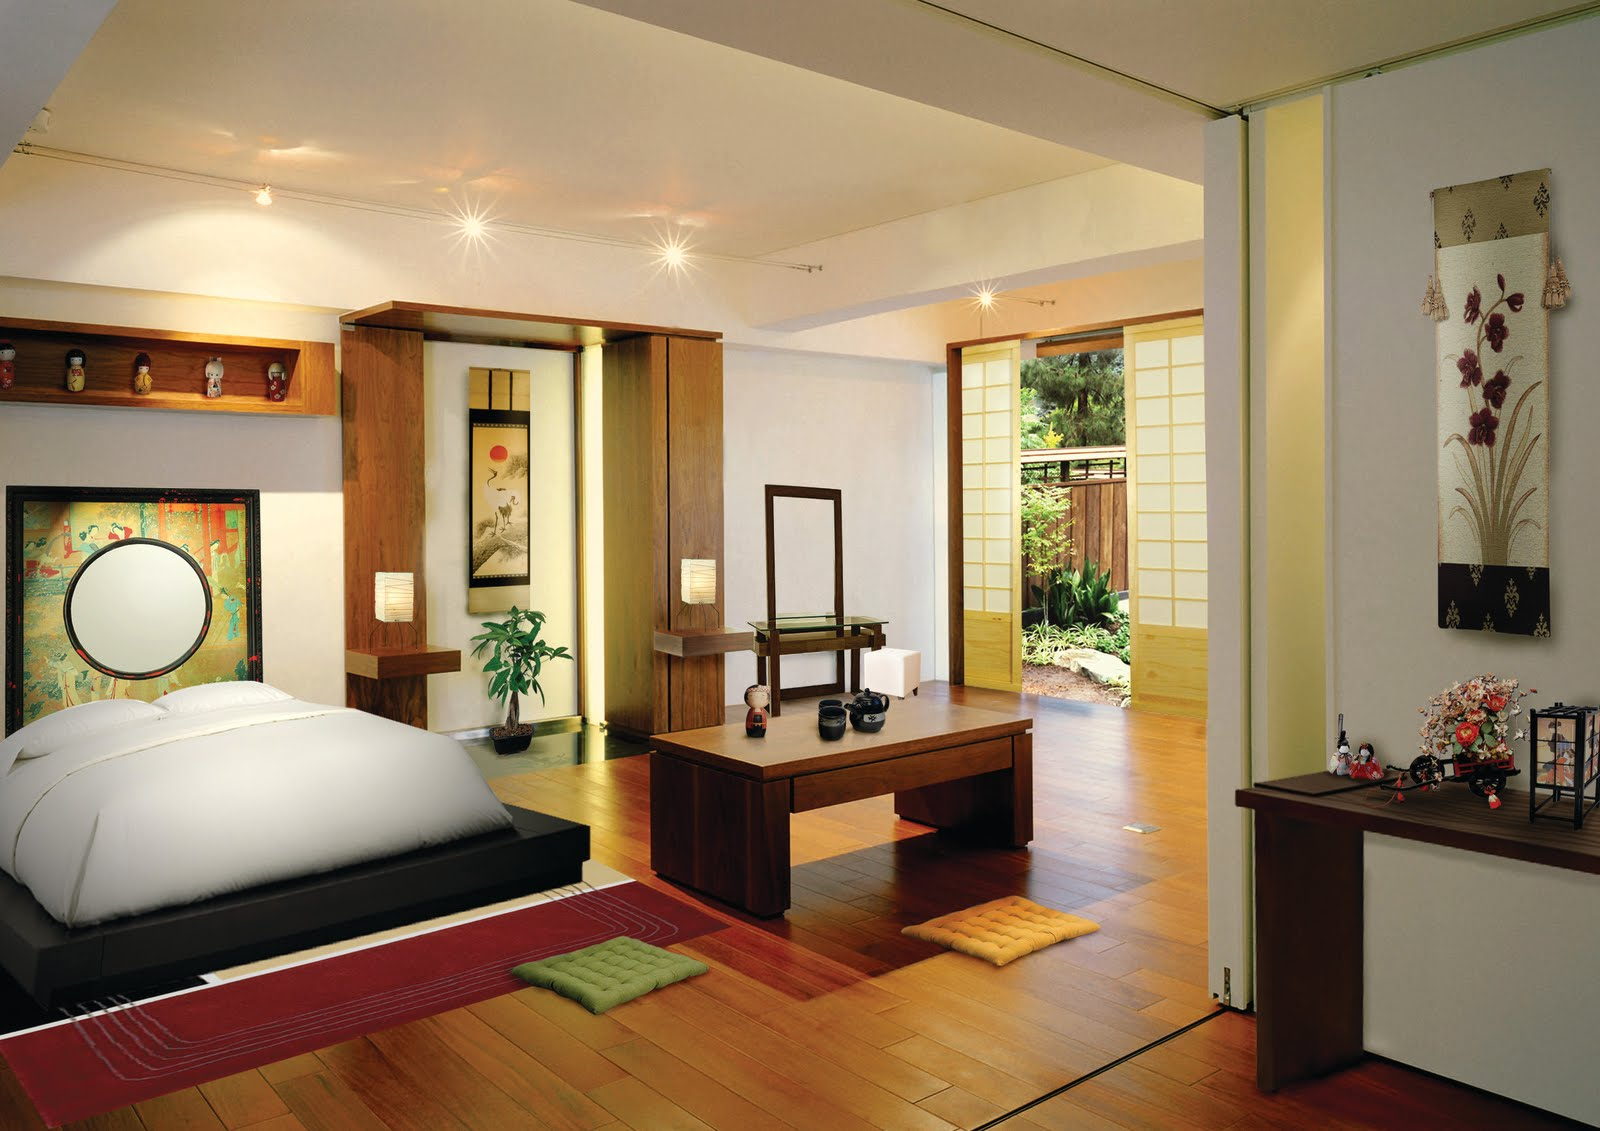 Melokumi japanese style bedroom design for Asian themed bedroom